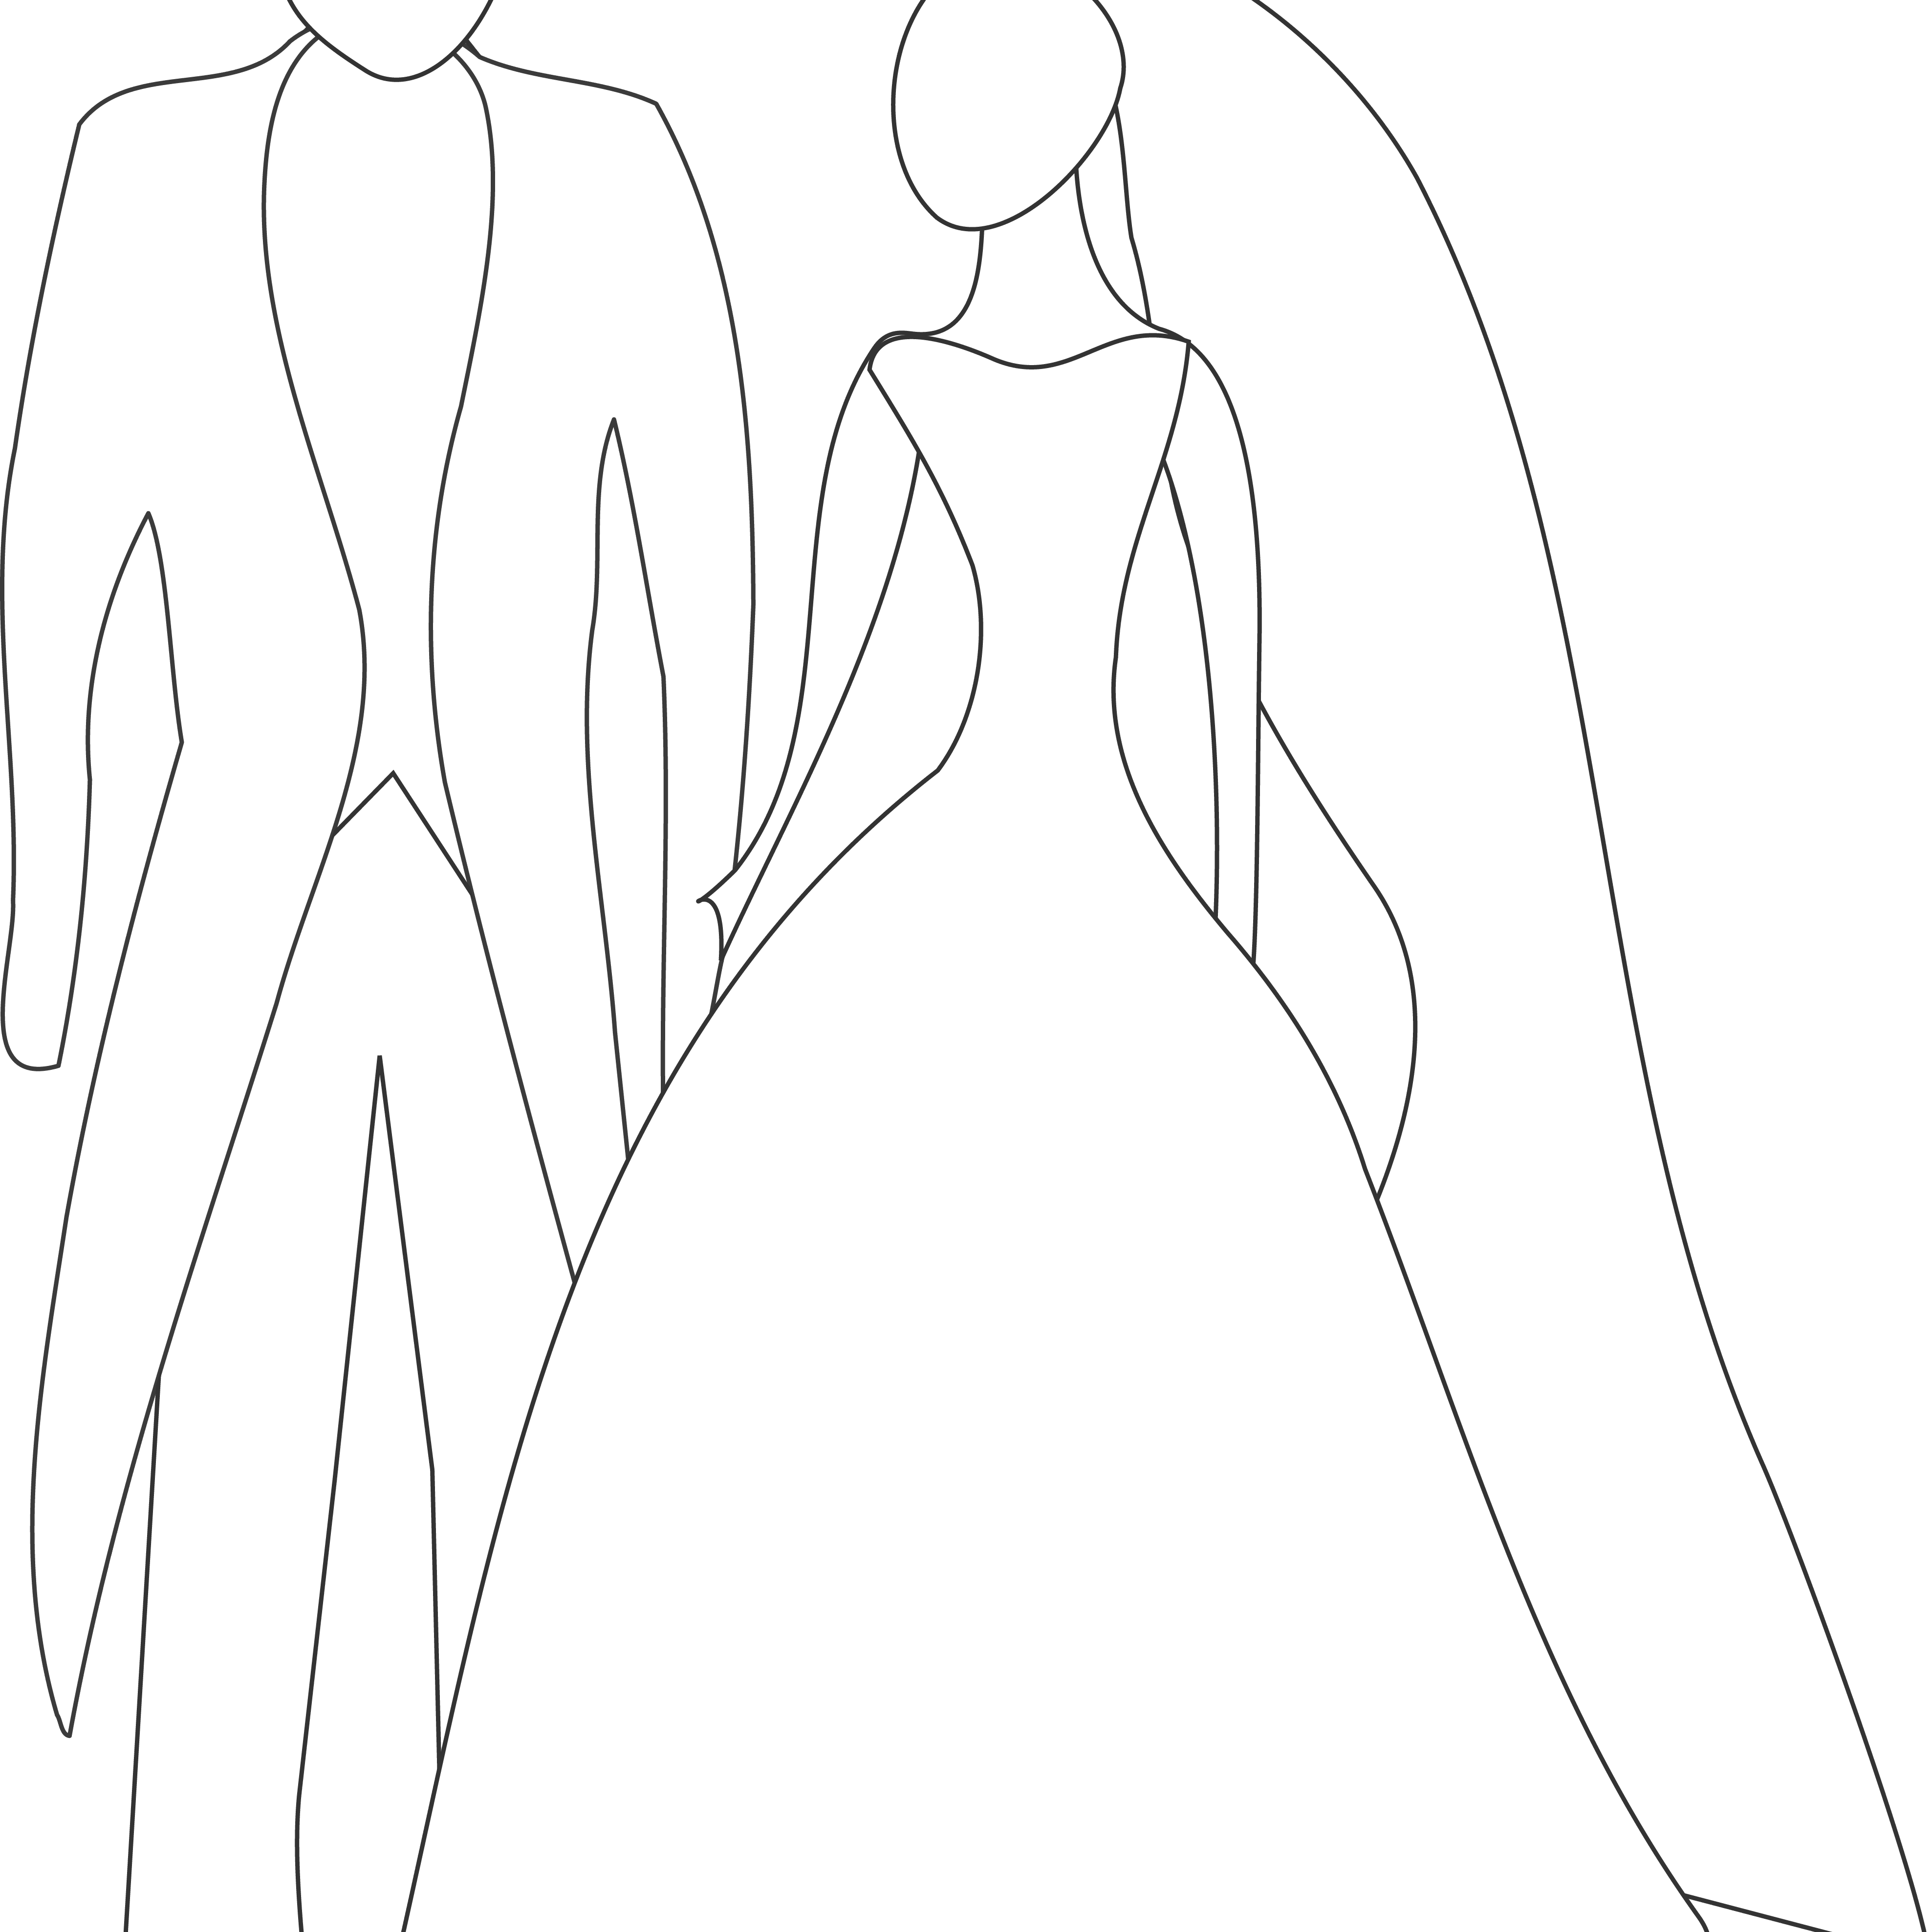 Stylized Bride and Groom